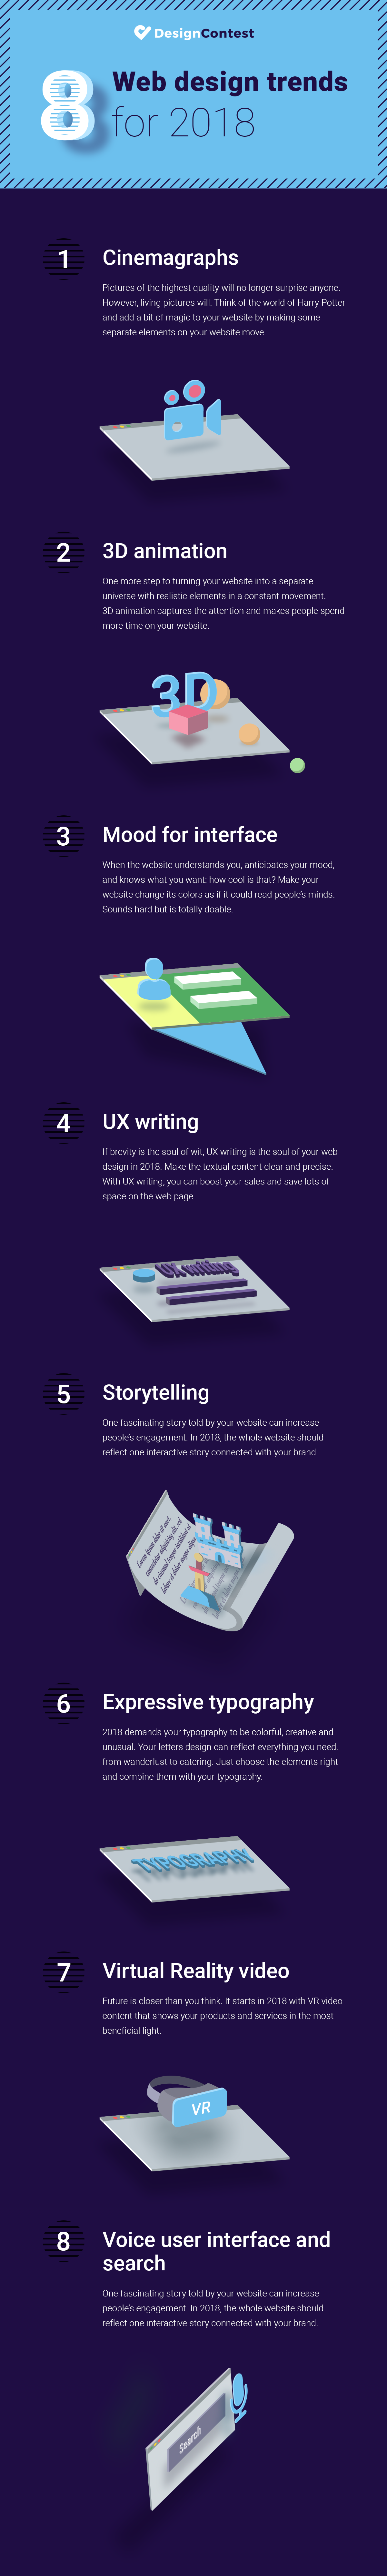 8 Web Design Trends For 2018 - #Infographic